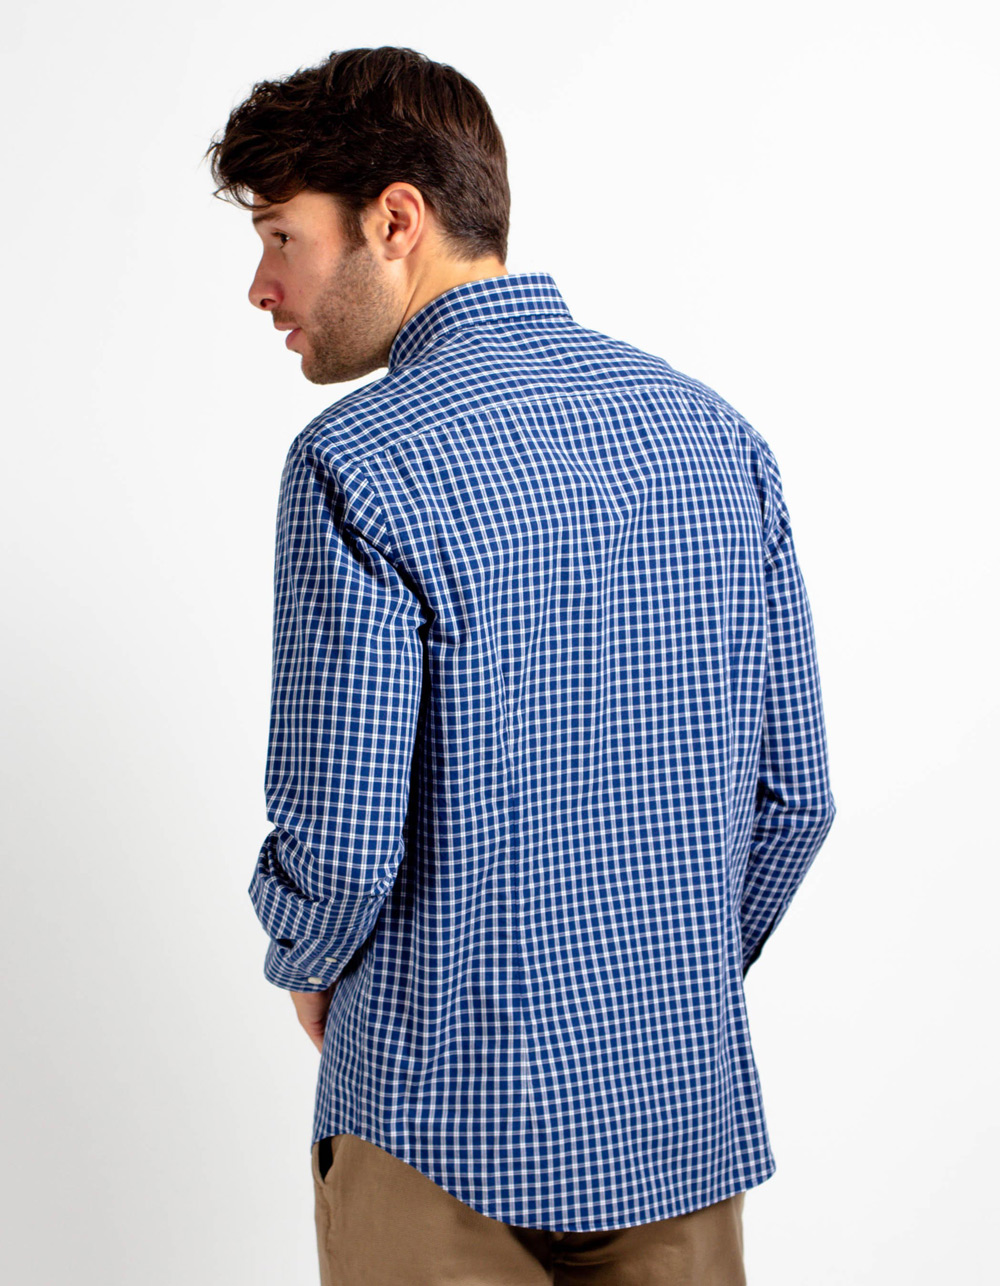 Chequered shirt  - Backside